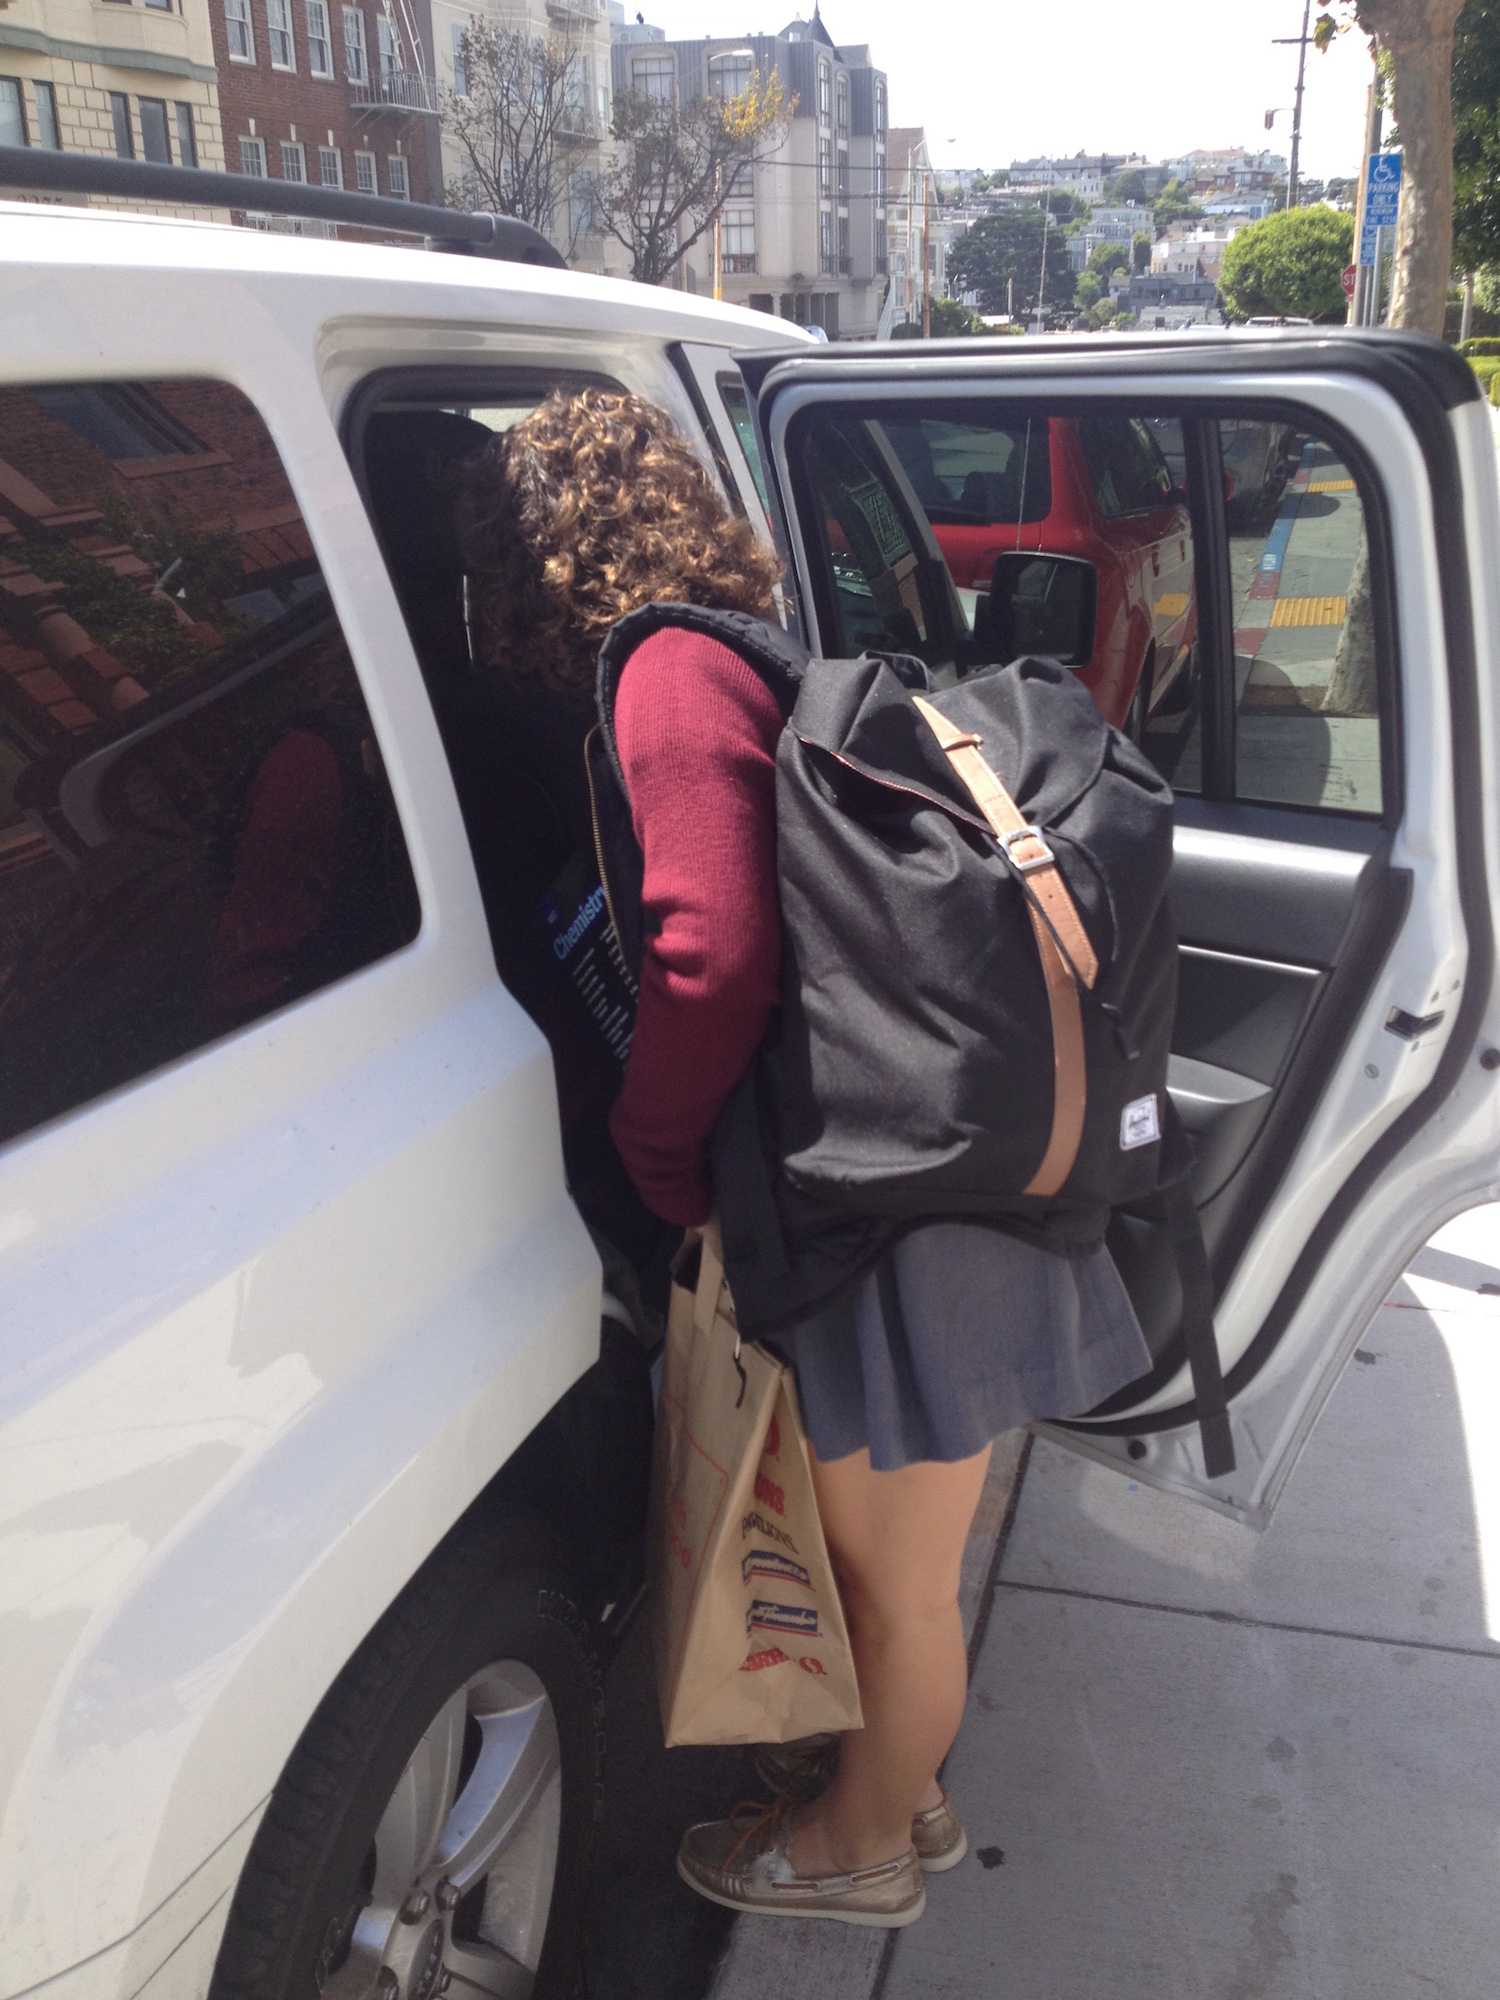 Sophomore Madison O'Neill brings donated goods to drive to Calistoga and St. Helena to help those evacuated from fire.